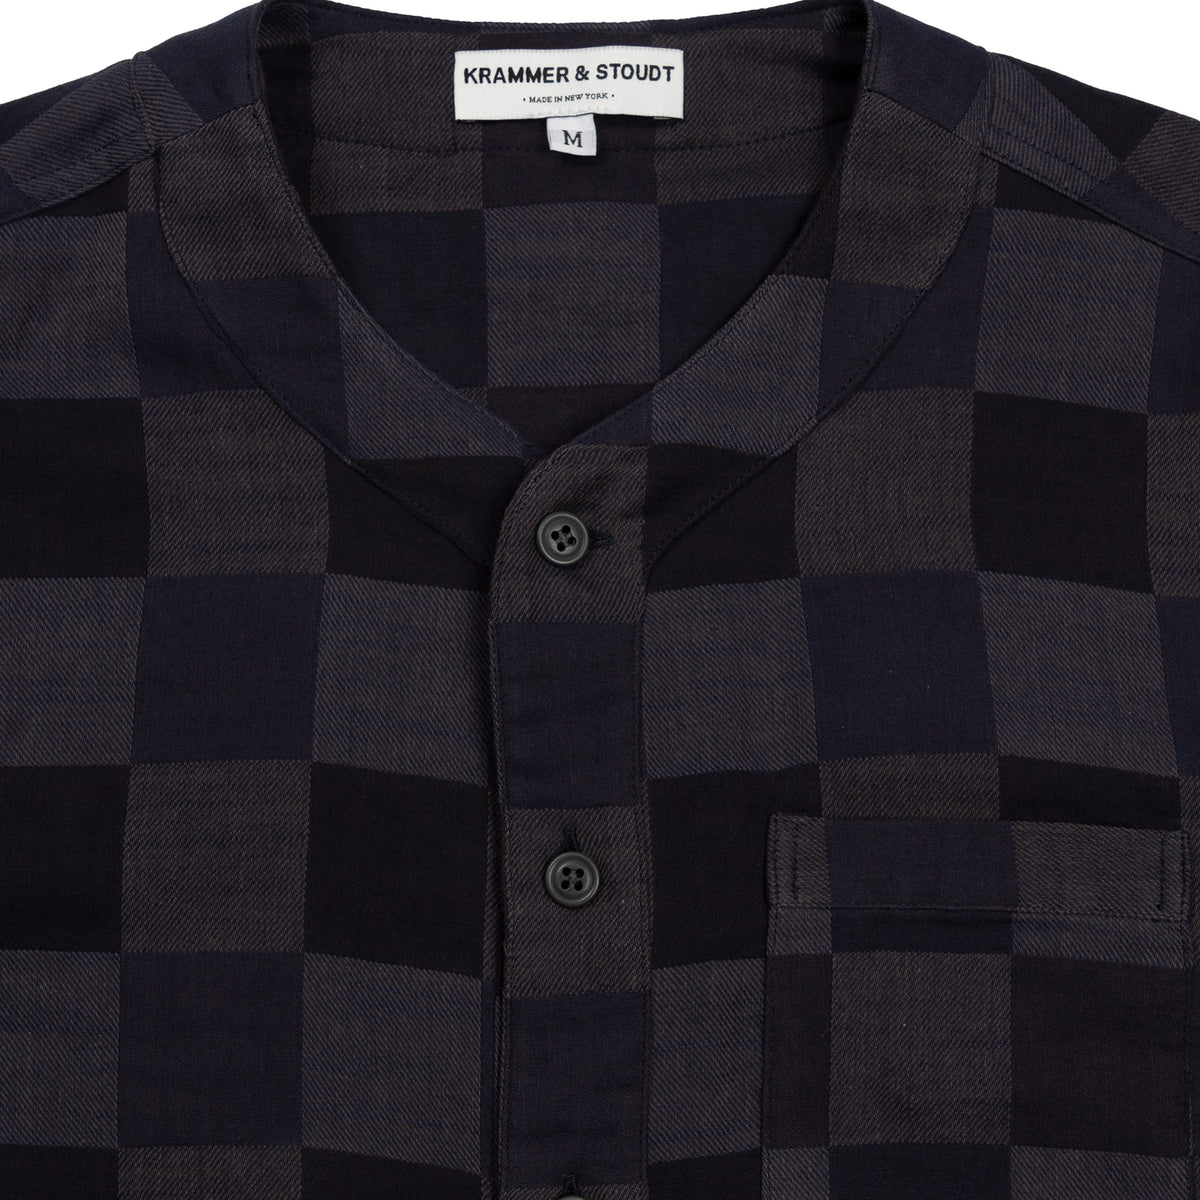 Krammer and Stoudt Baseball Shirt Black Navy Checkers Collar Detail